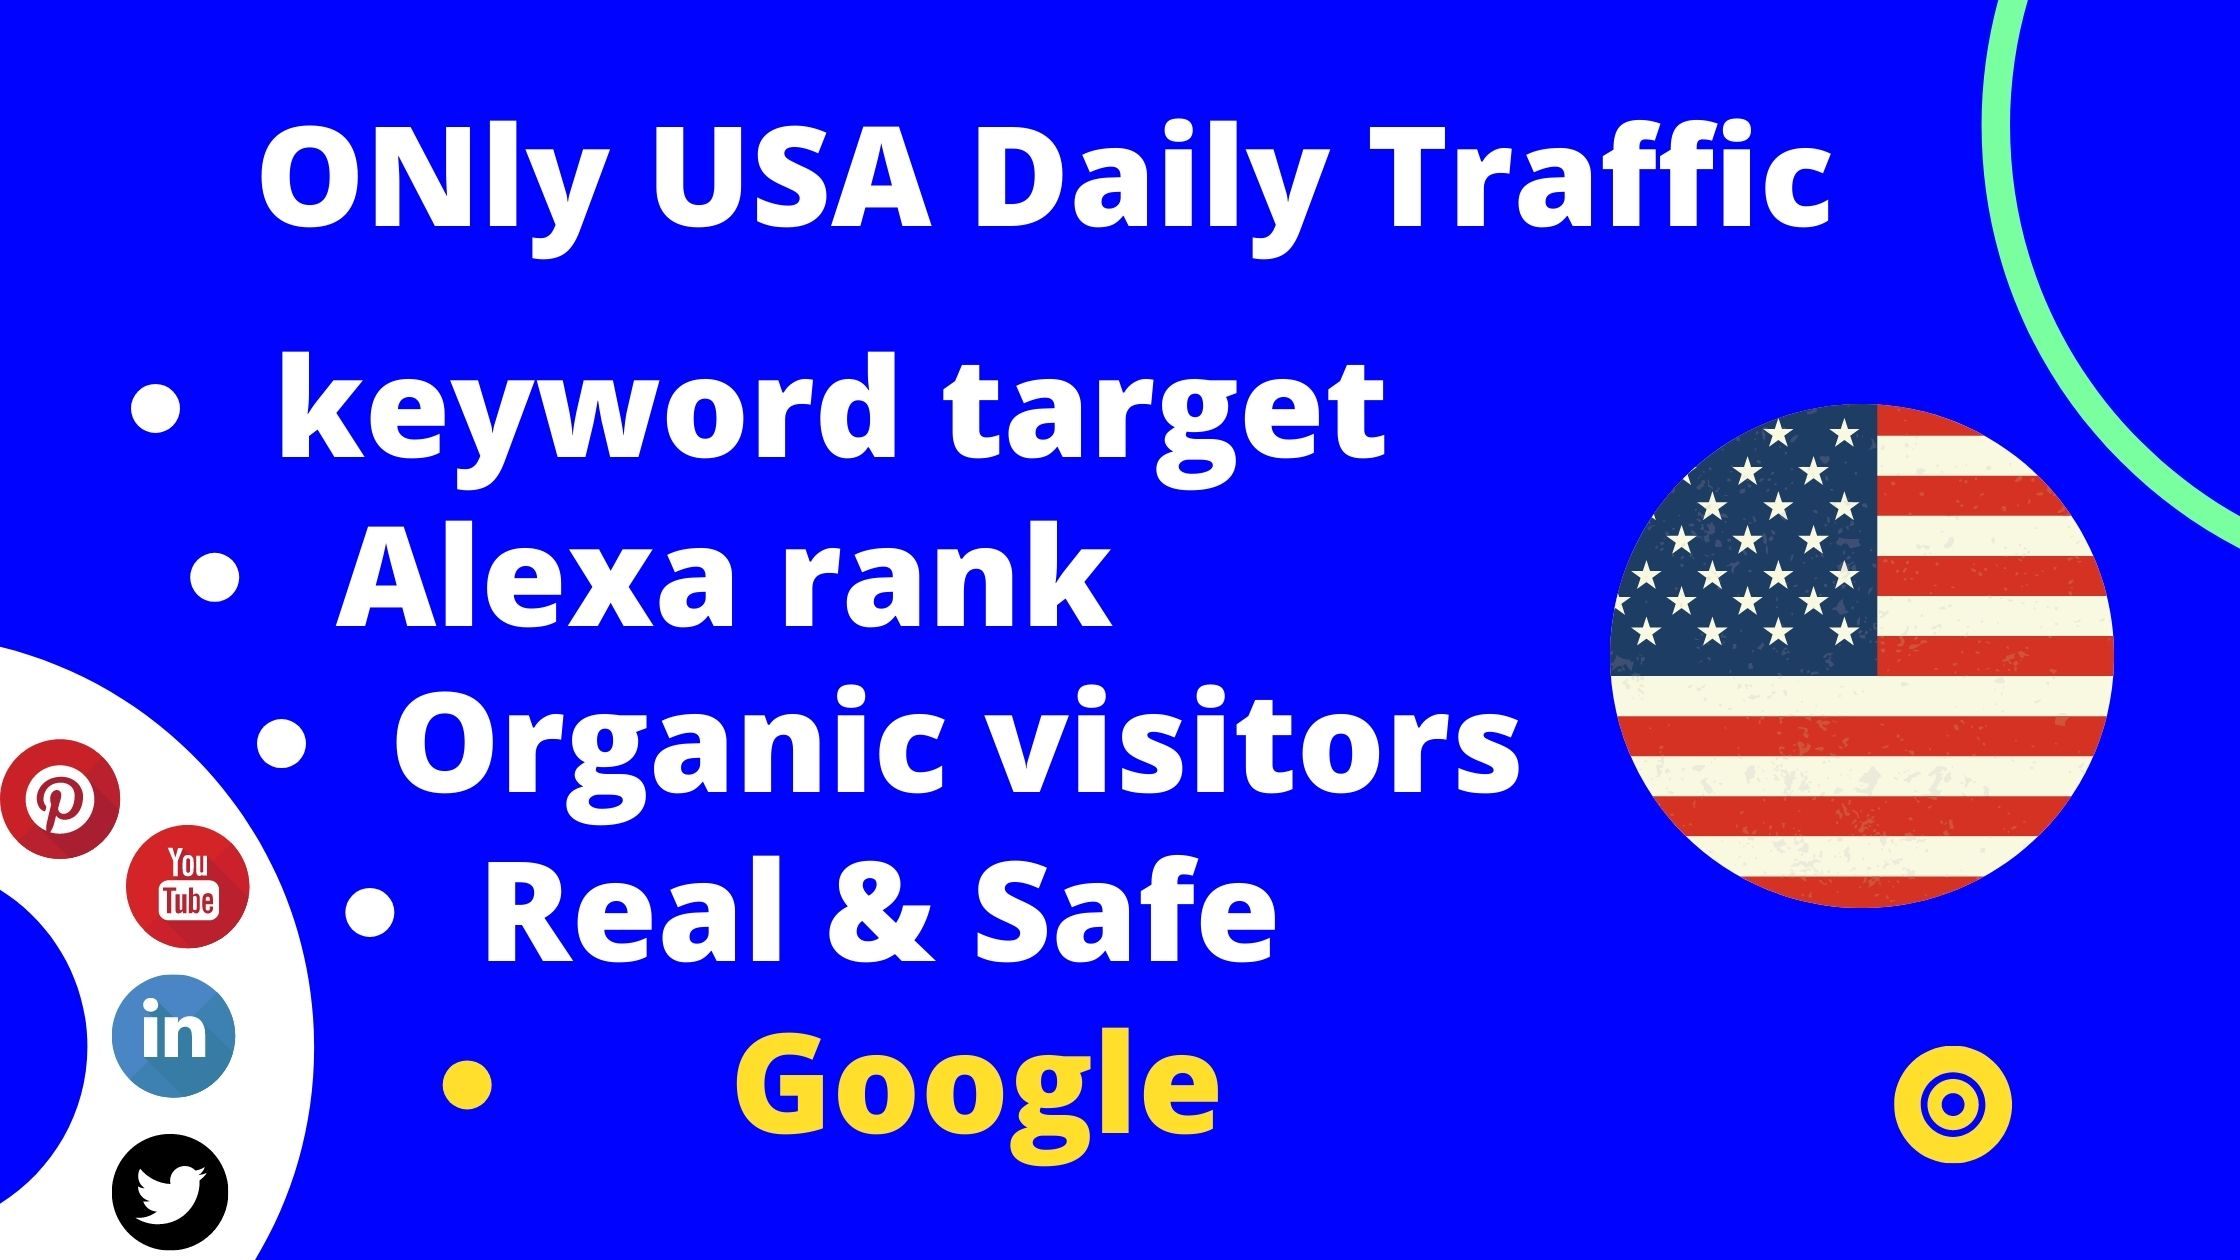 Drive keyword target daily traffic only USA for your website